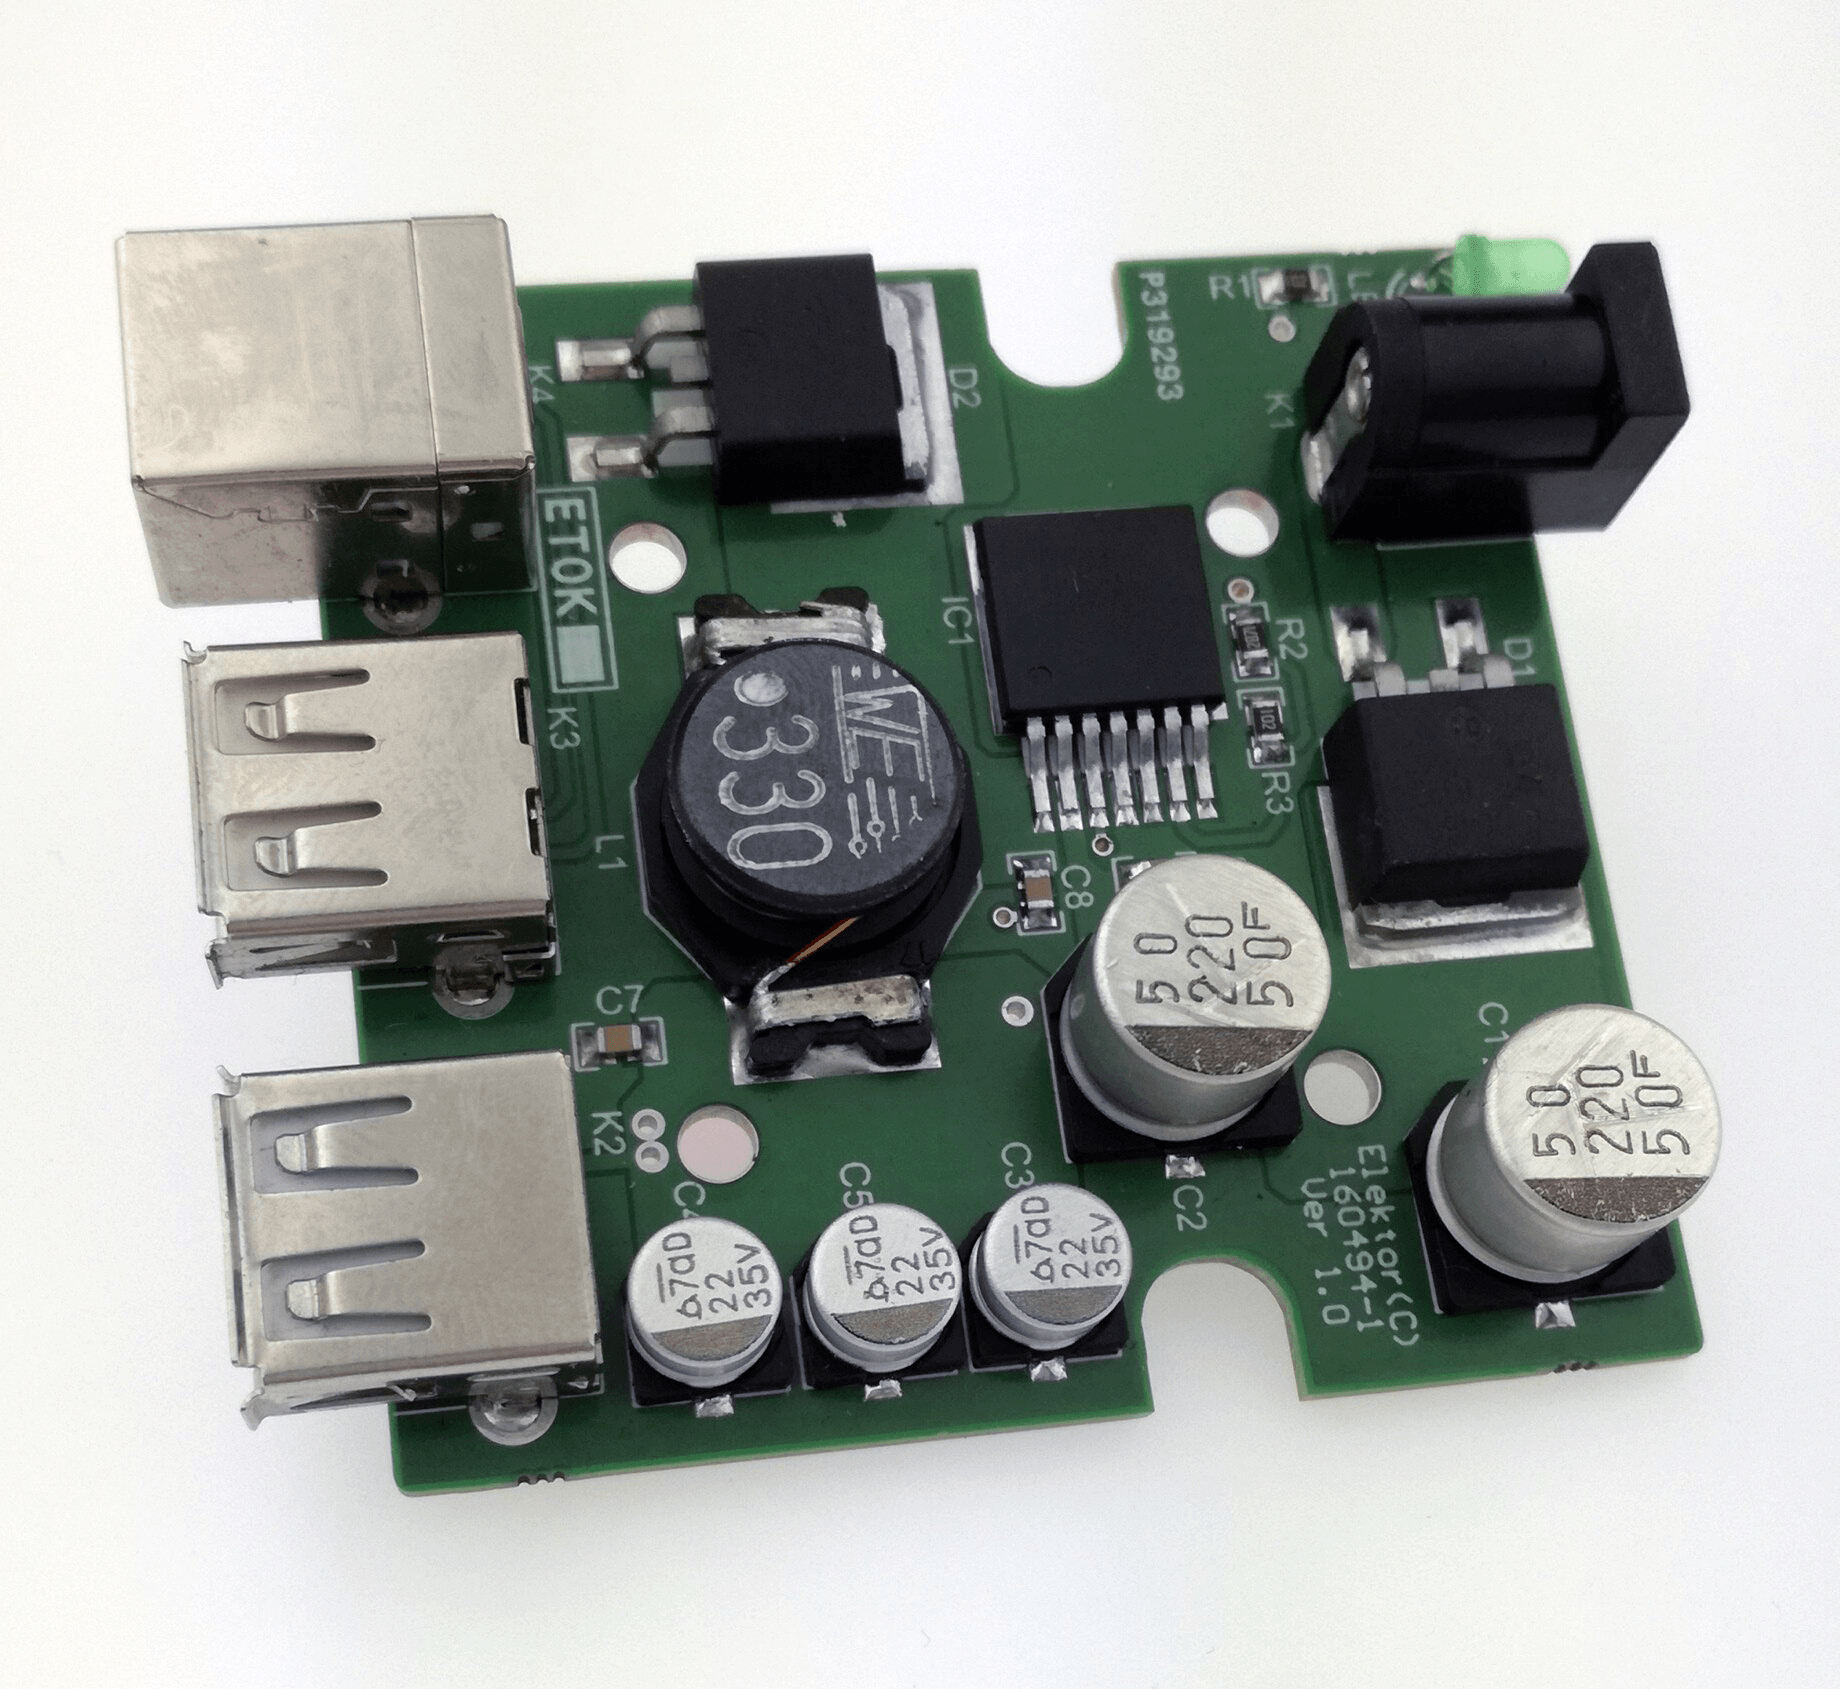 Power supply module for RPi and harddisk - (160494-91)